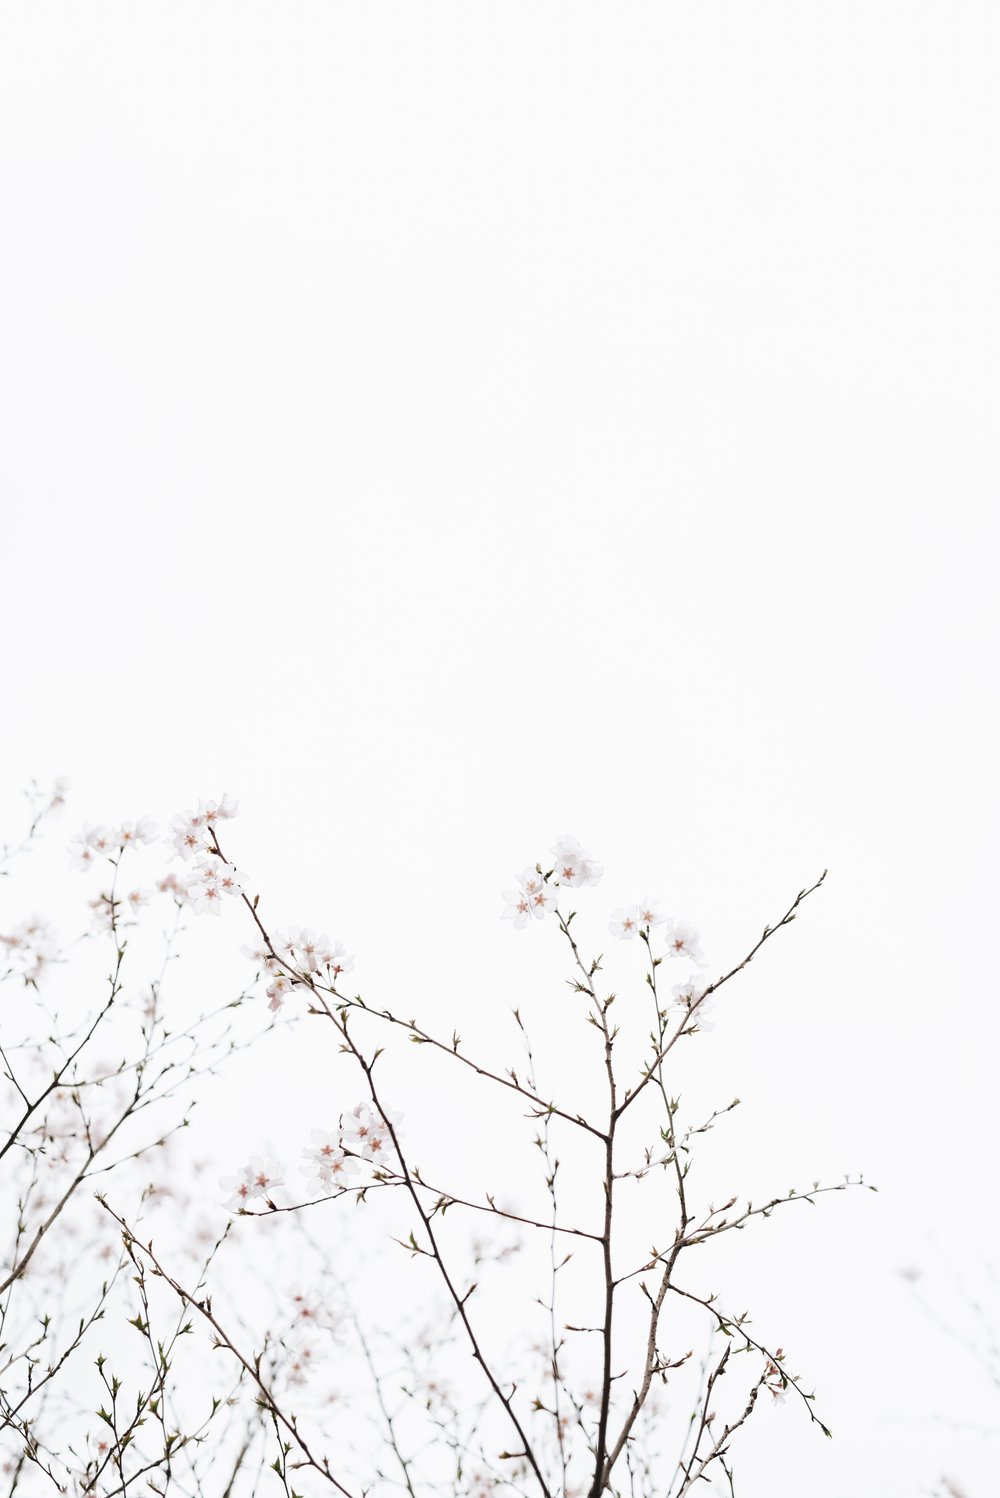 17-Free-Stock-Photos-Design-Pin-Pinterest17.jpg